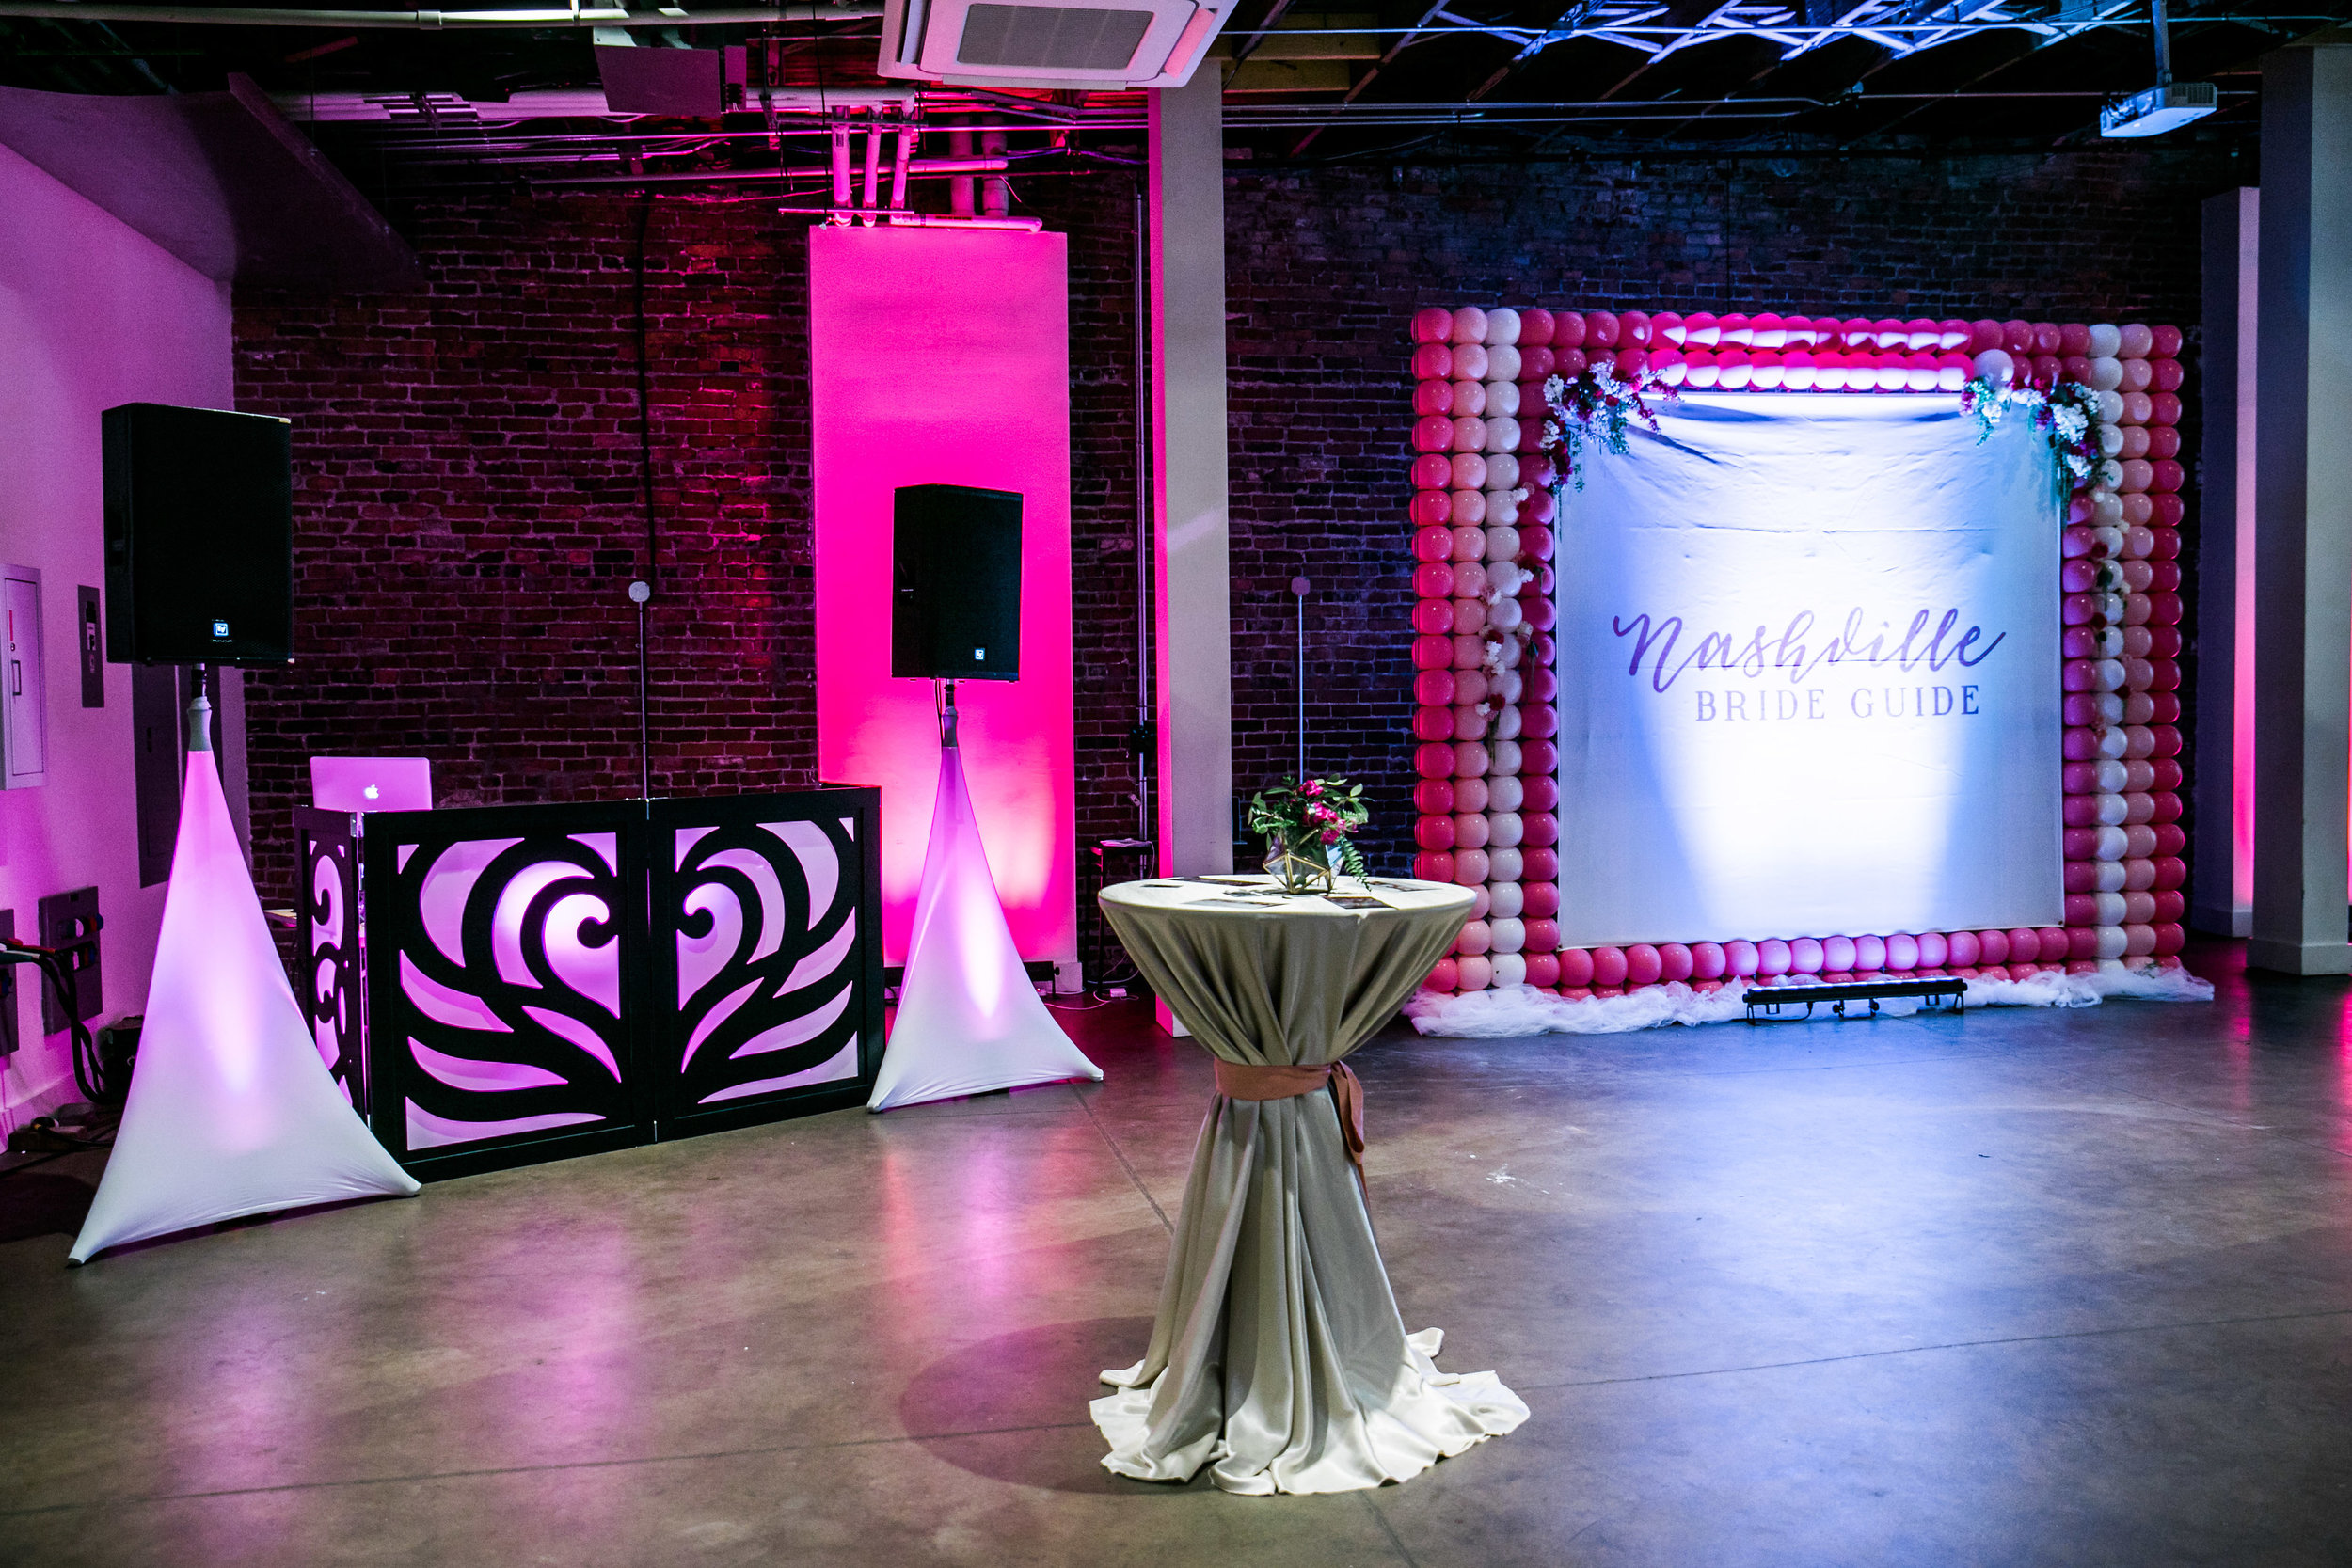 NashvilleBrideGuideLaunchParty(15of139)(1).jpg